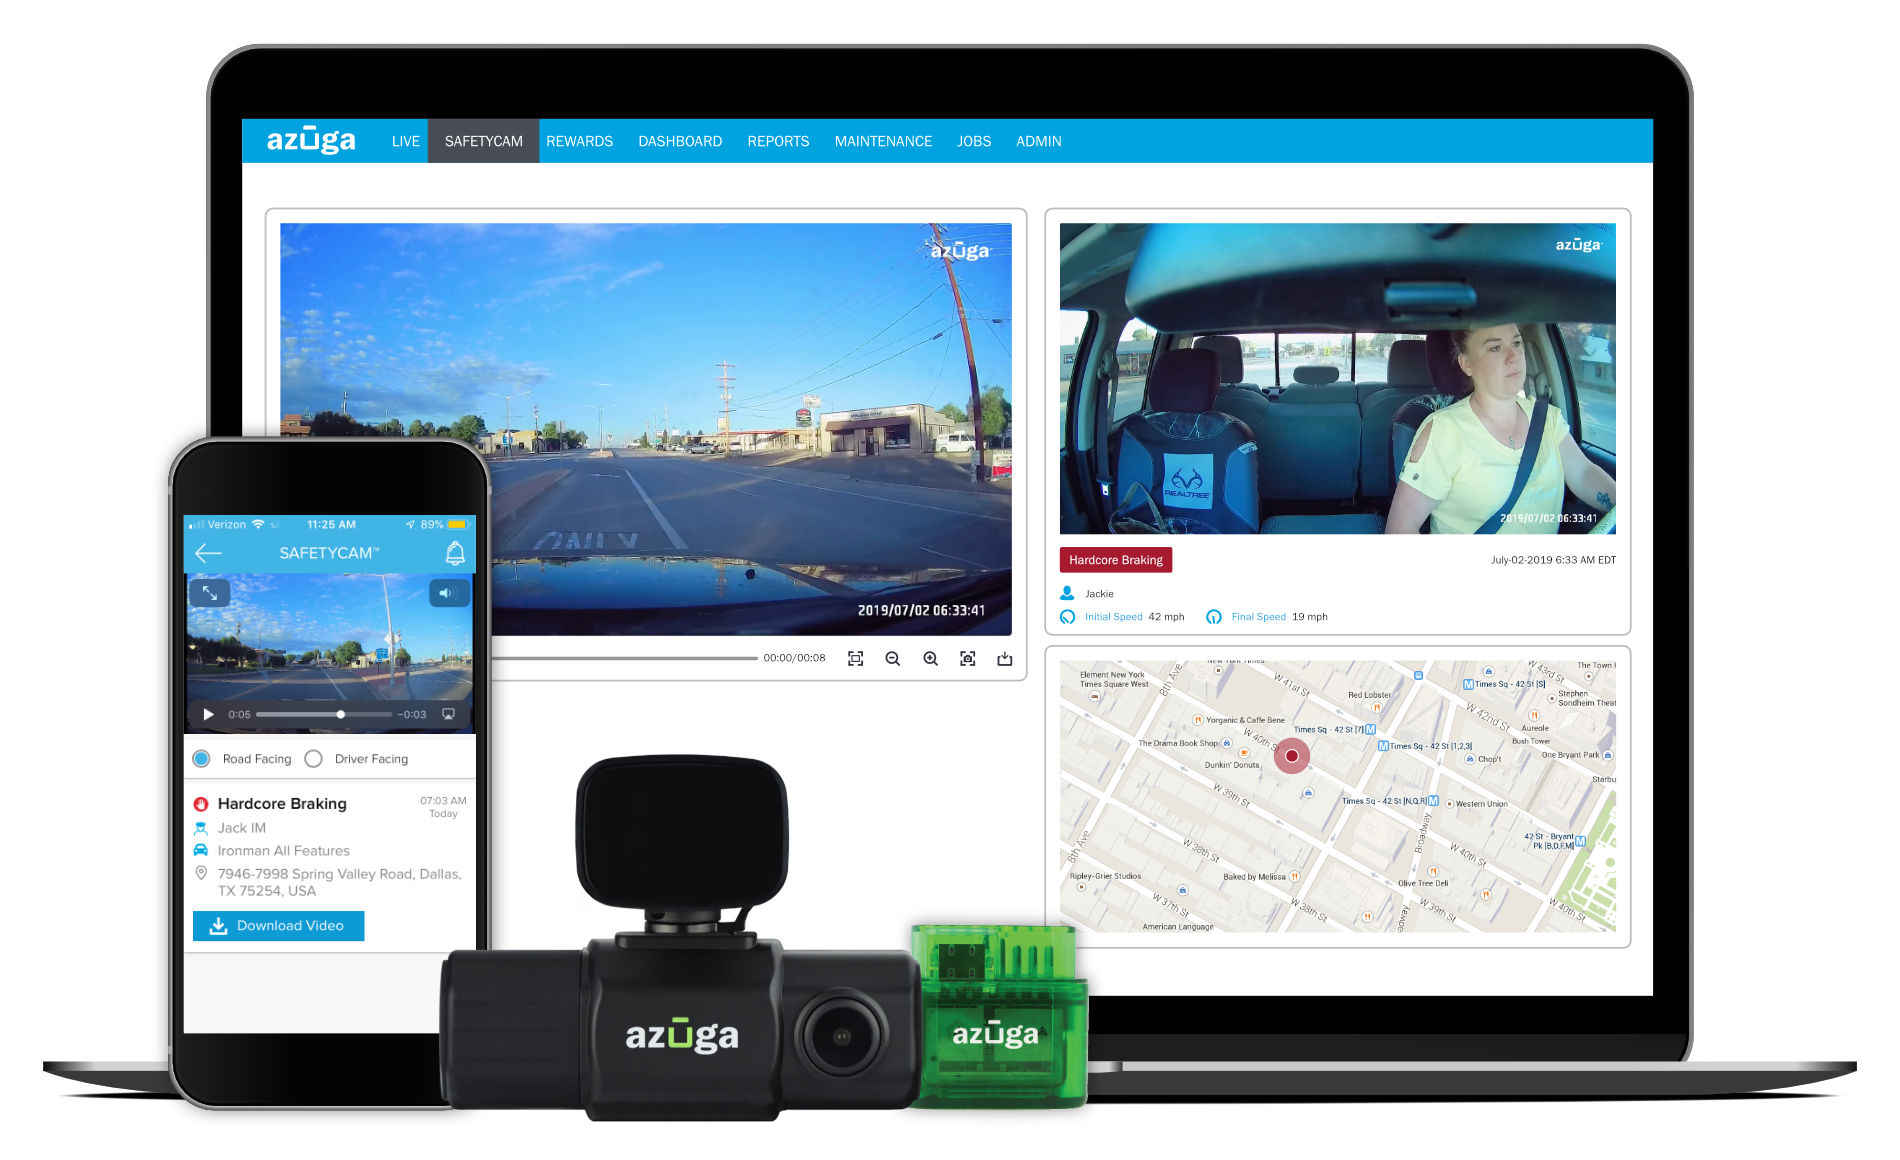 Laptop with Azuga Fleet software on screen, phone with FleetMoble on screen, SafetyCam dashcam, and green Azuga GPS tracker